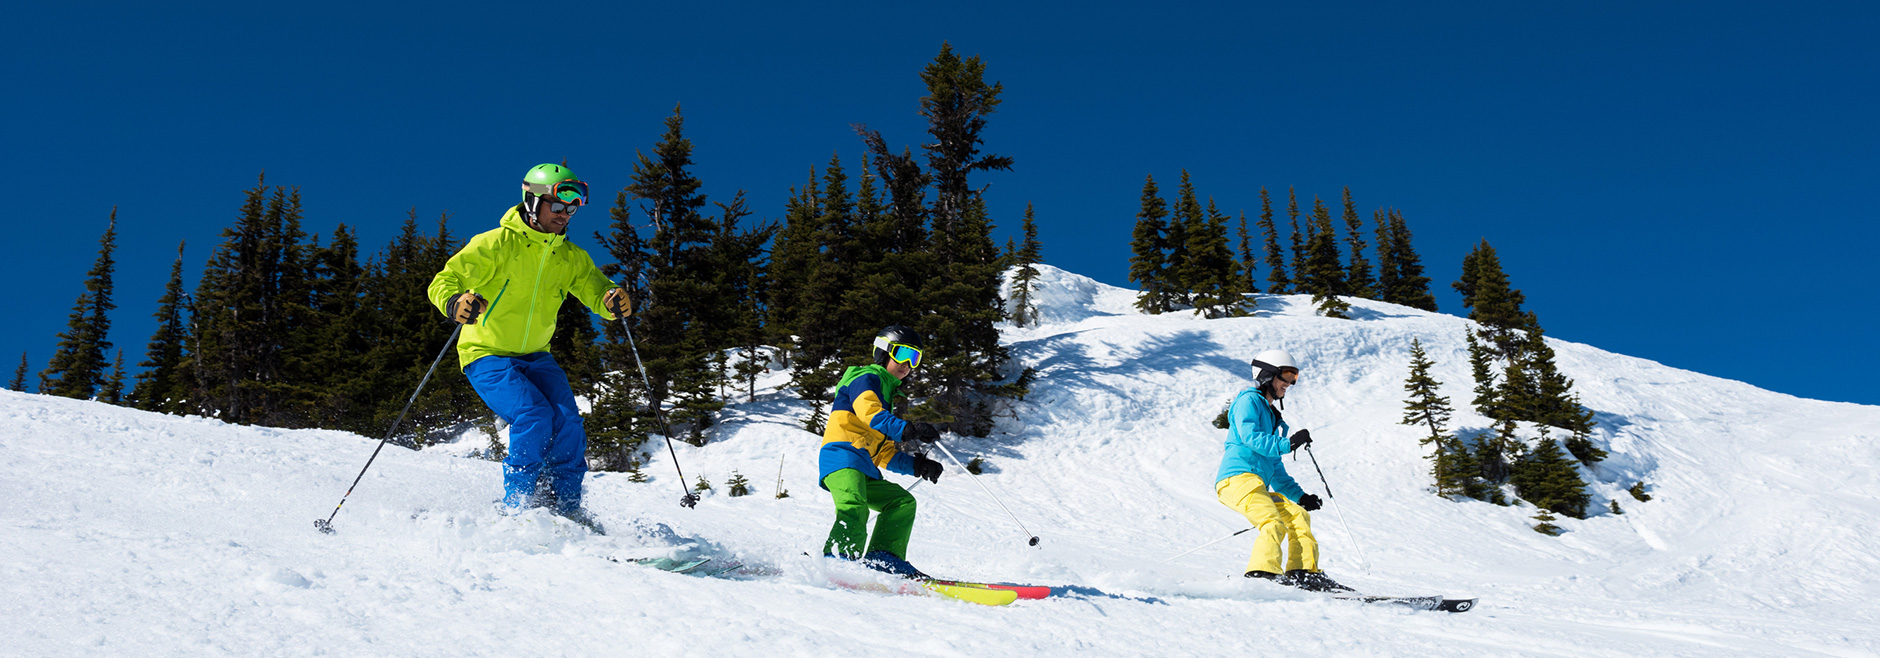 Skiers on Opening Day in Breckenridge, CO | Paragon Lodging